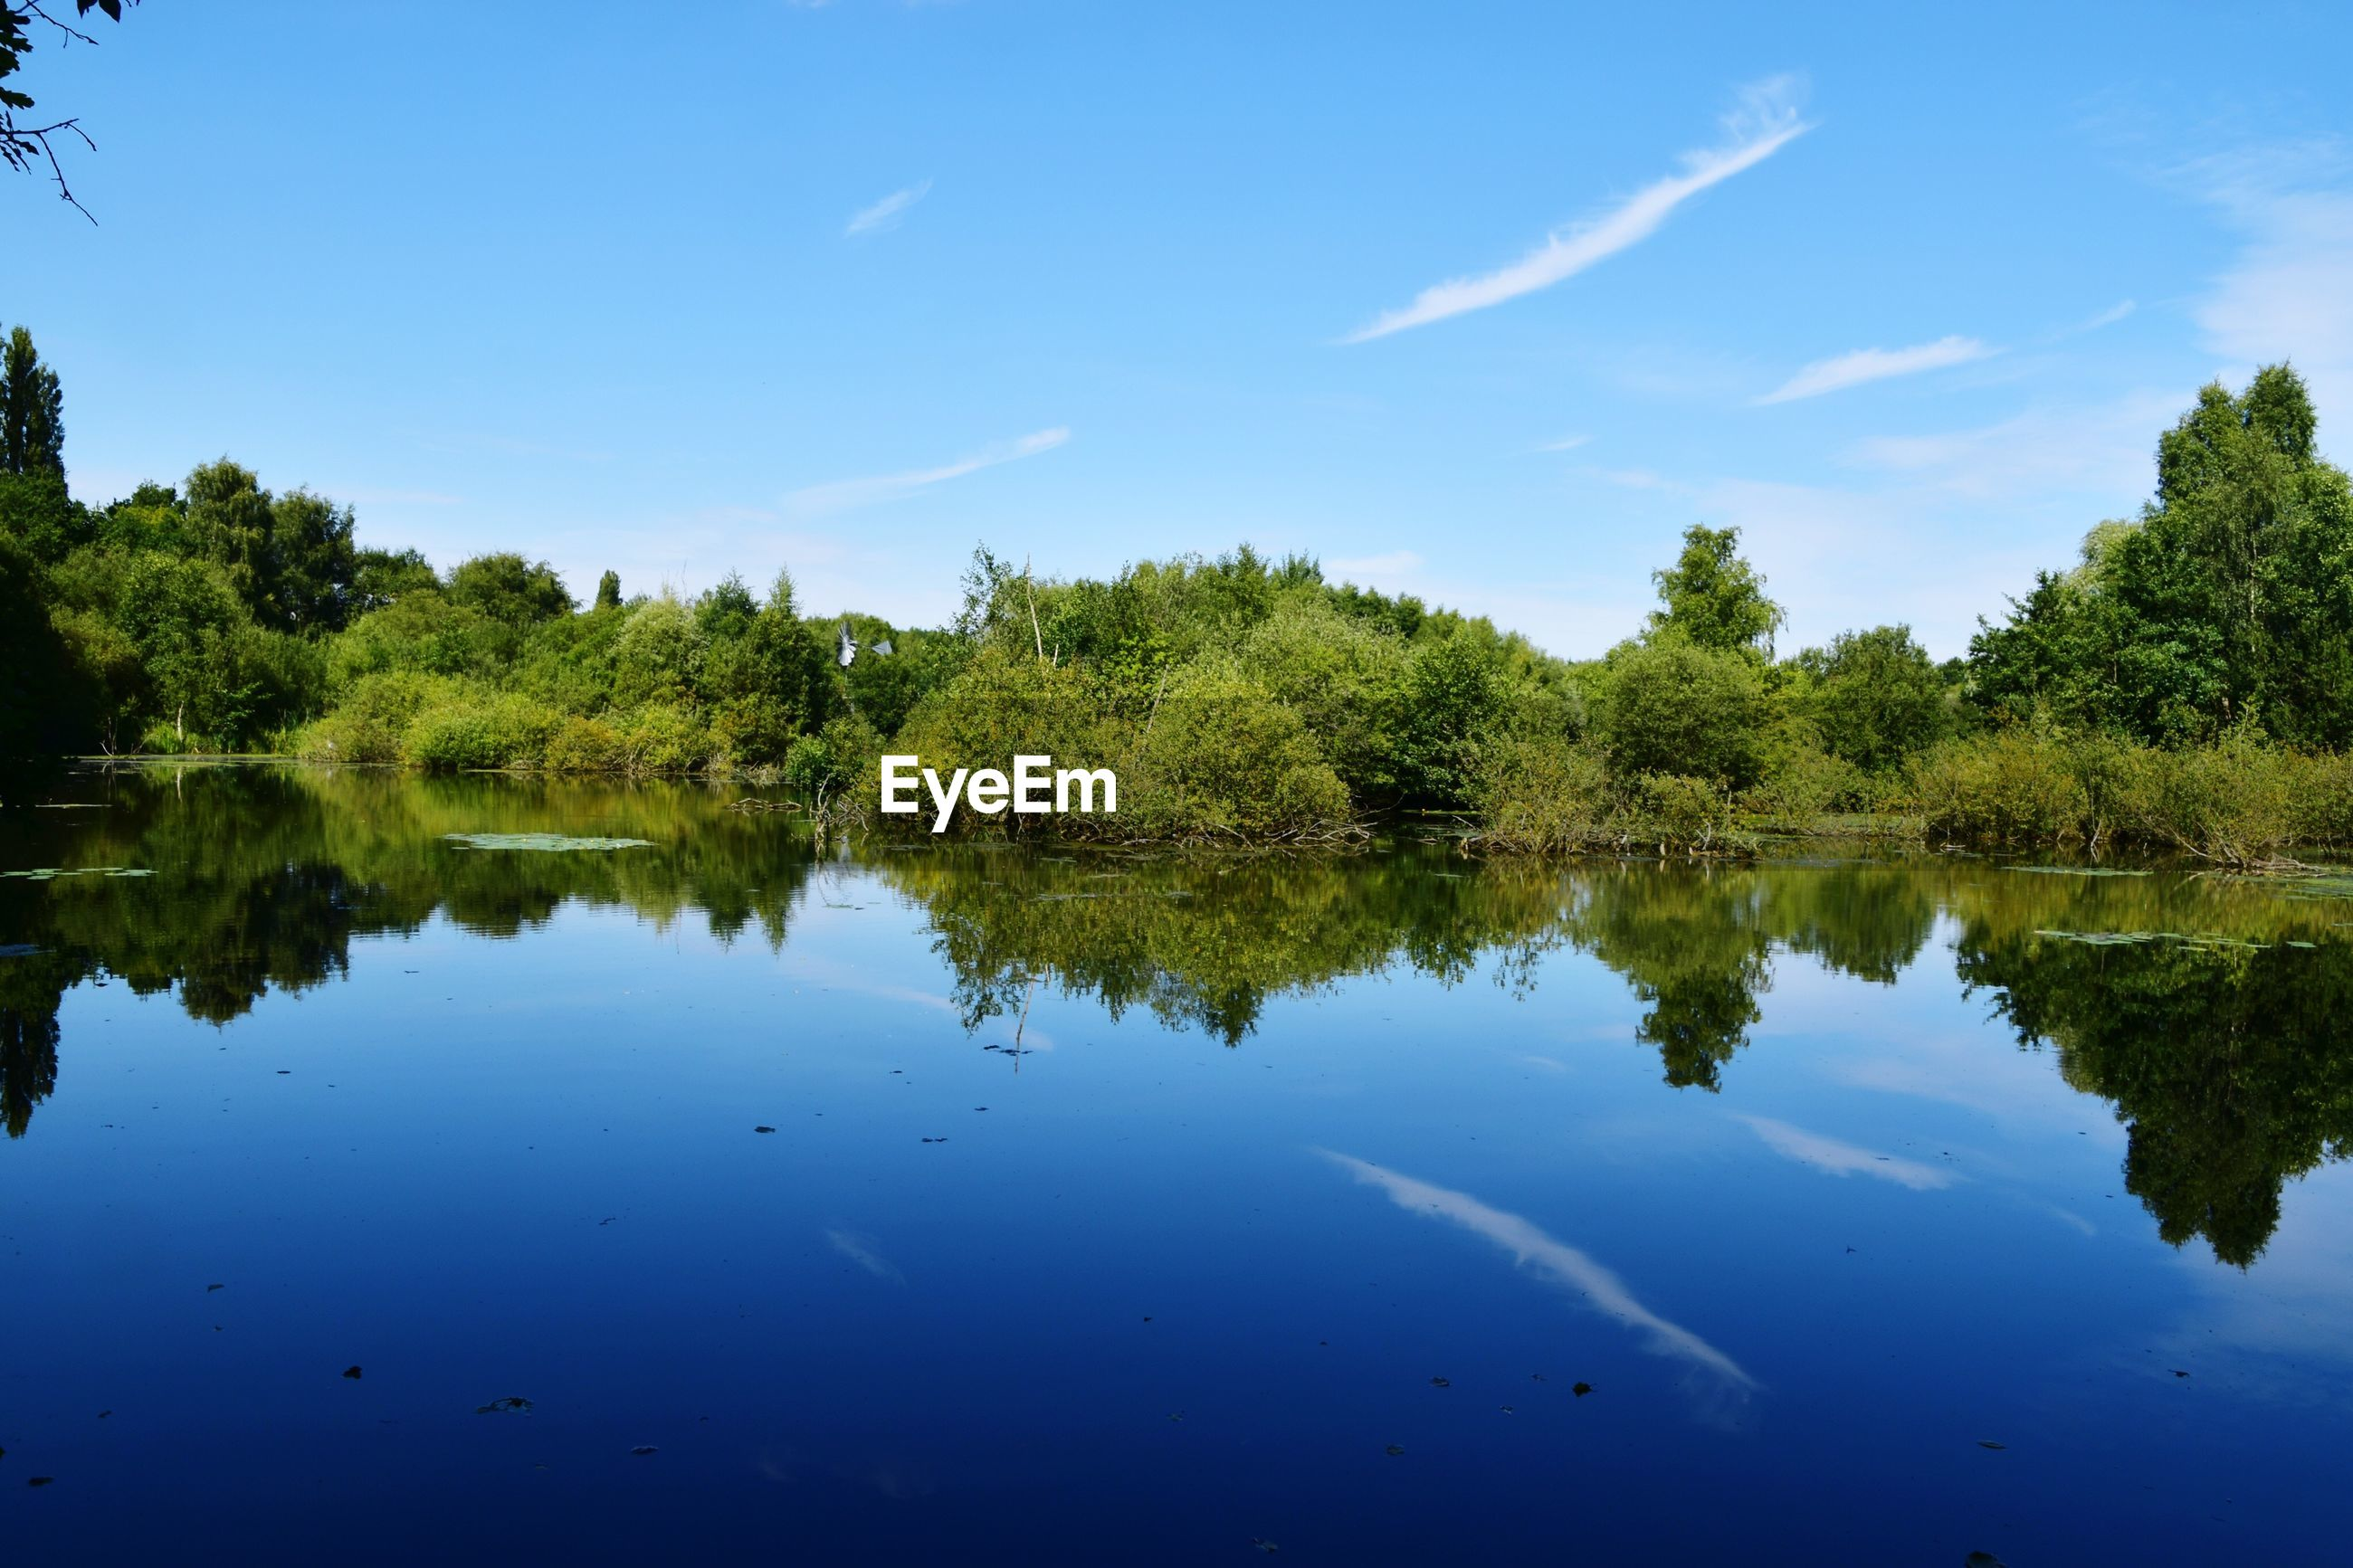 REFLECTION OF TREES ON LAKE AGAINST BLUE SKY